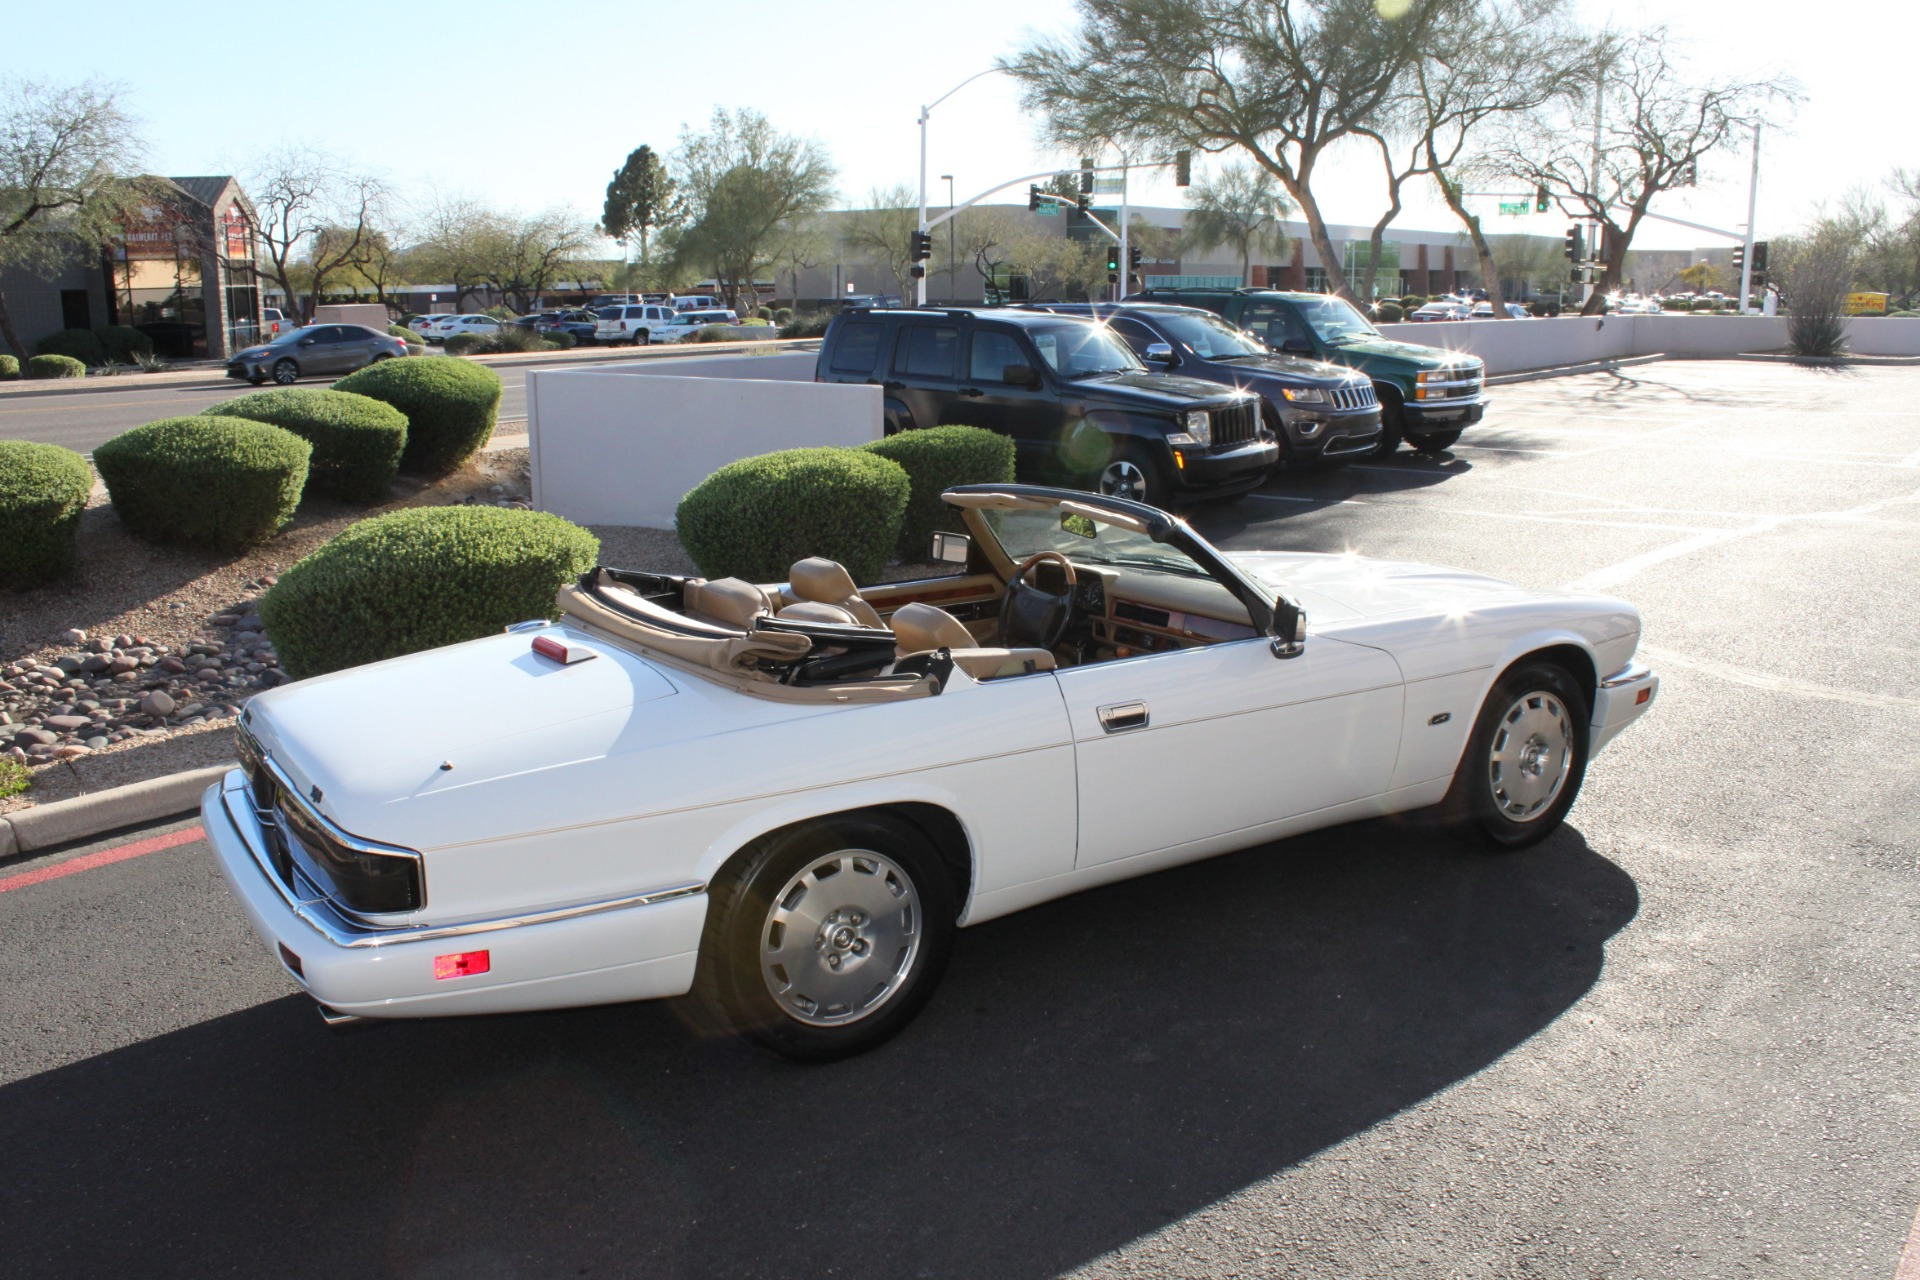 Used-1996-Jaguar-XJS-Convertible-Chevelle